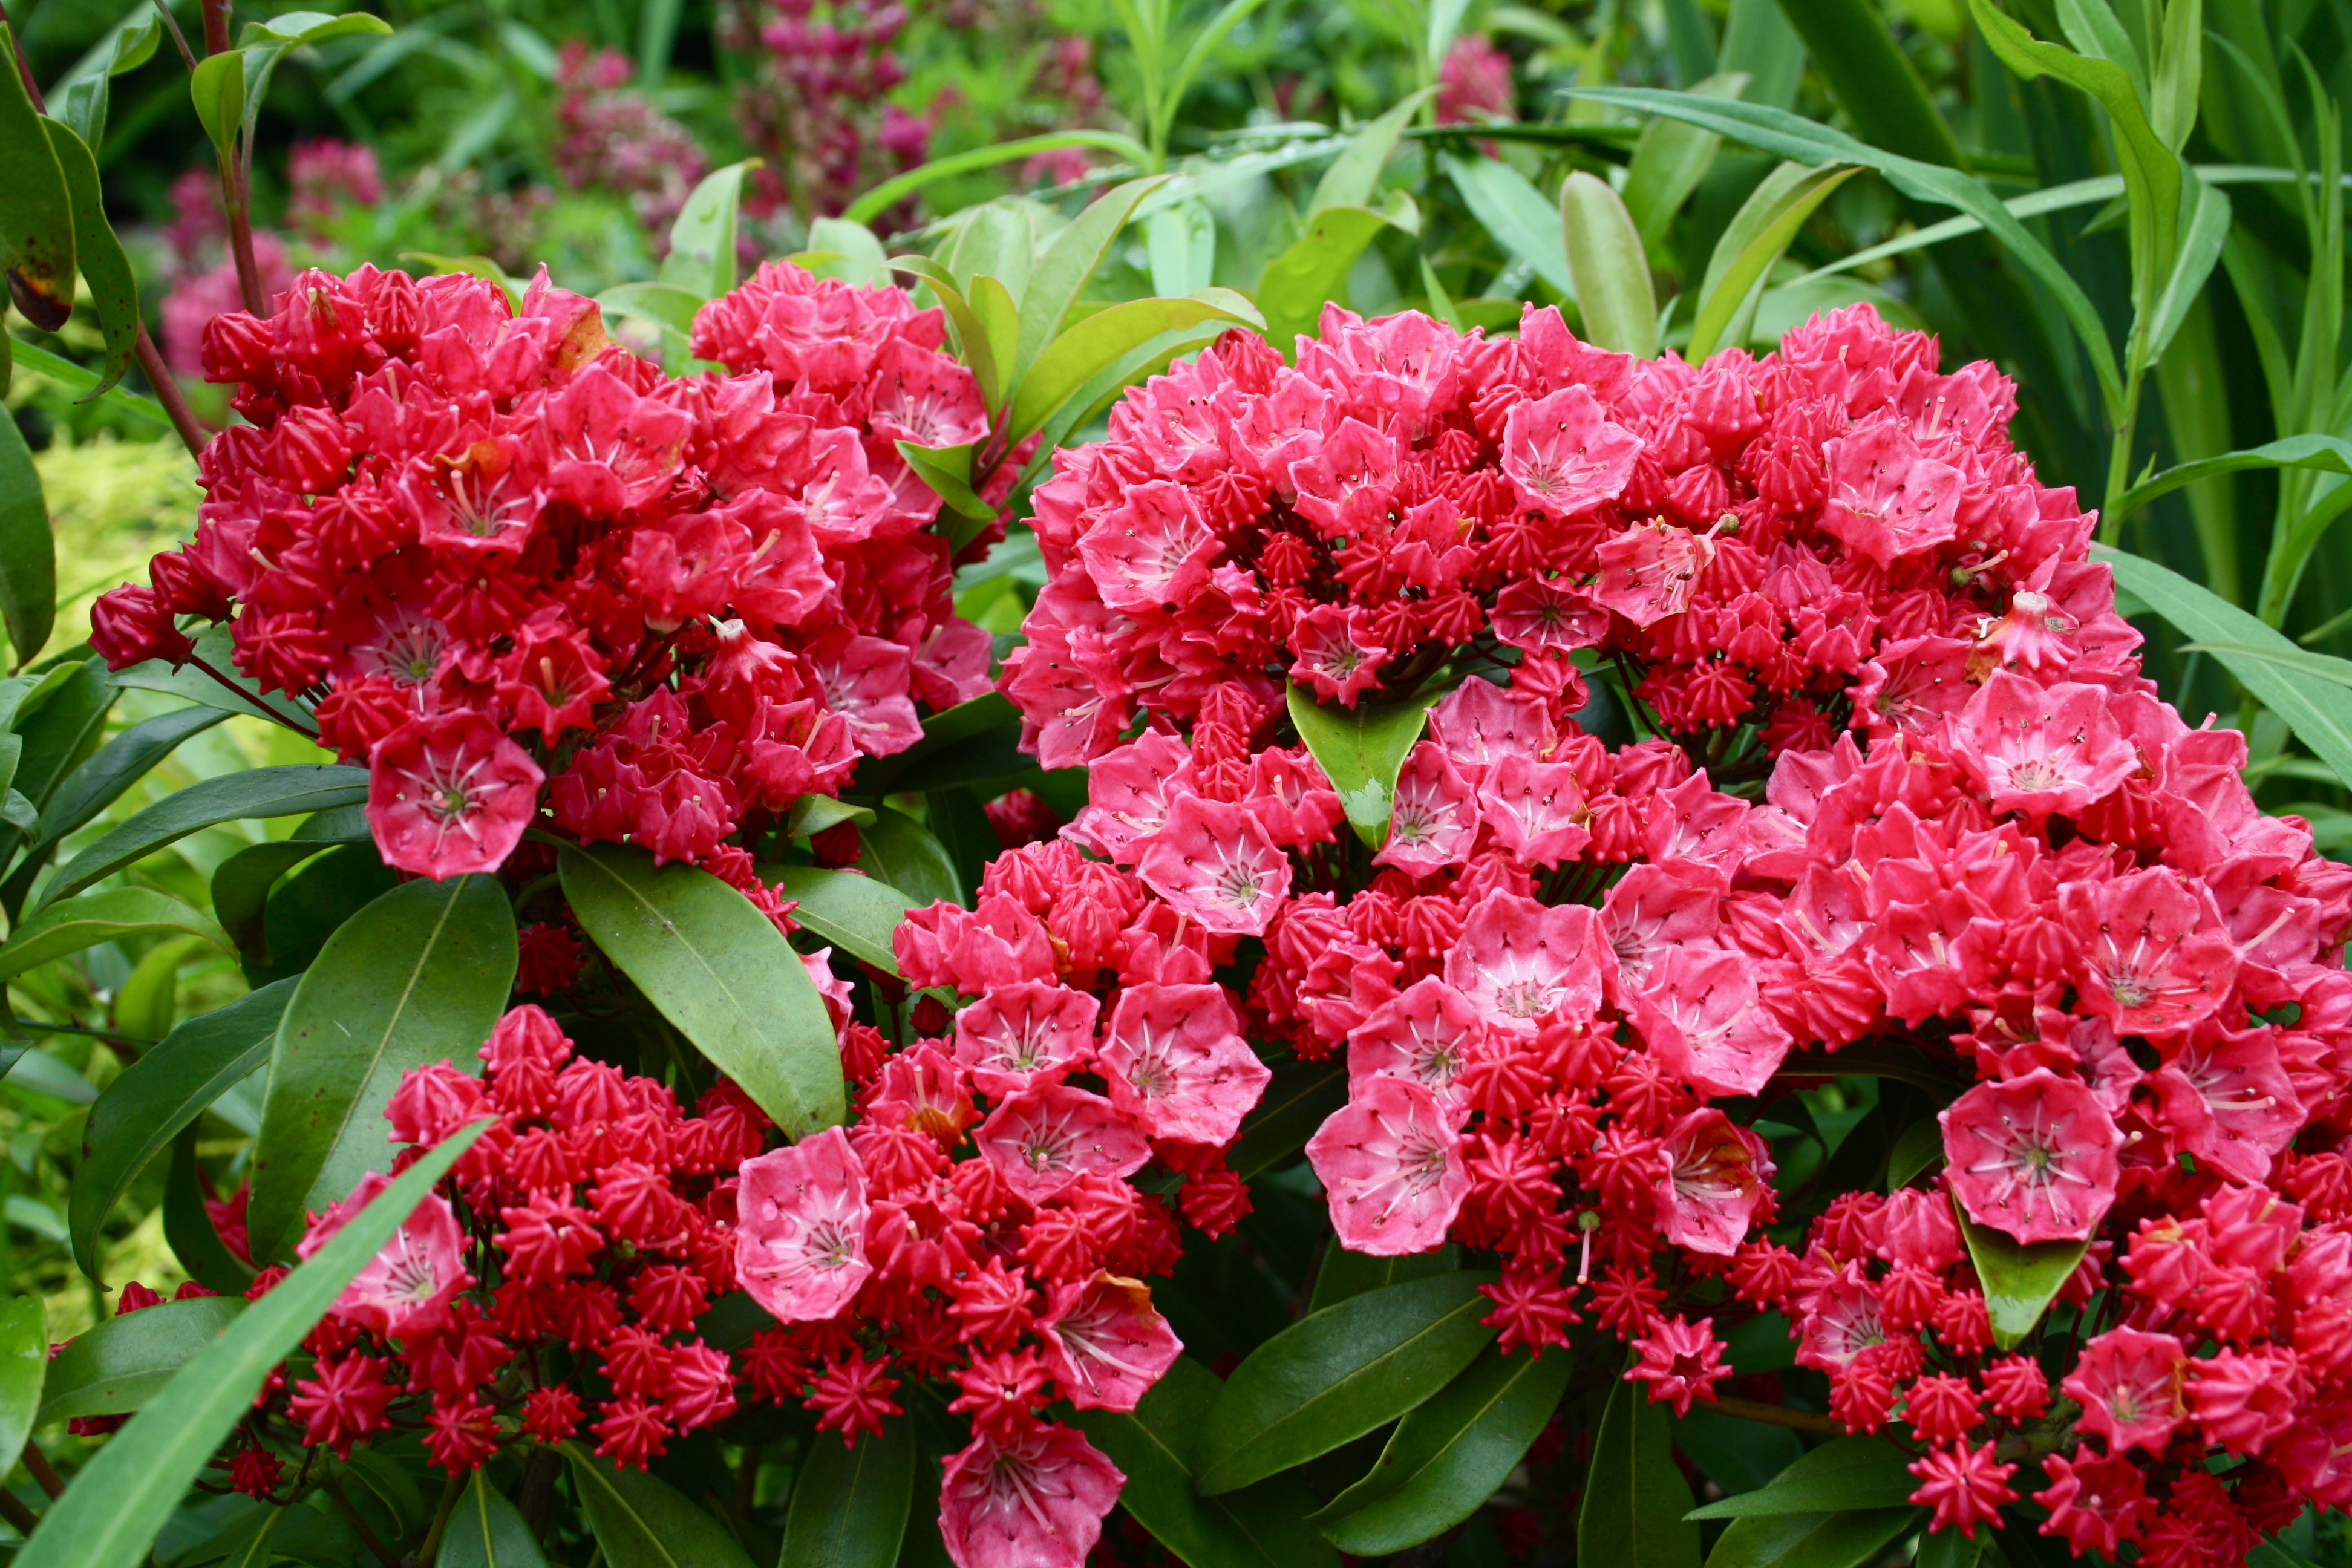 Red Flowers, Bloom, Flowers, Garden, Plant, HQ Photo